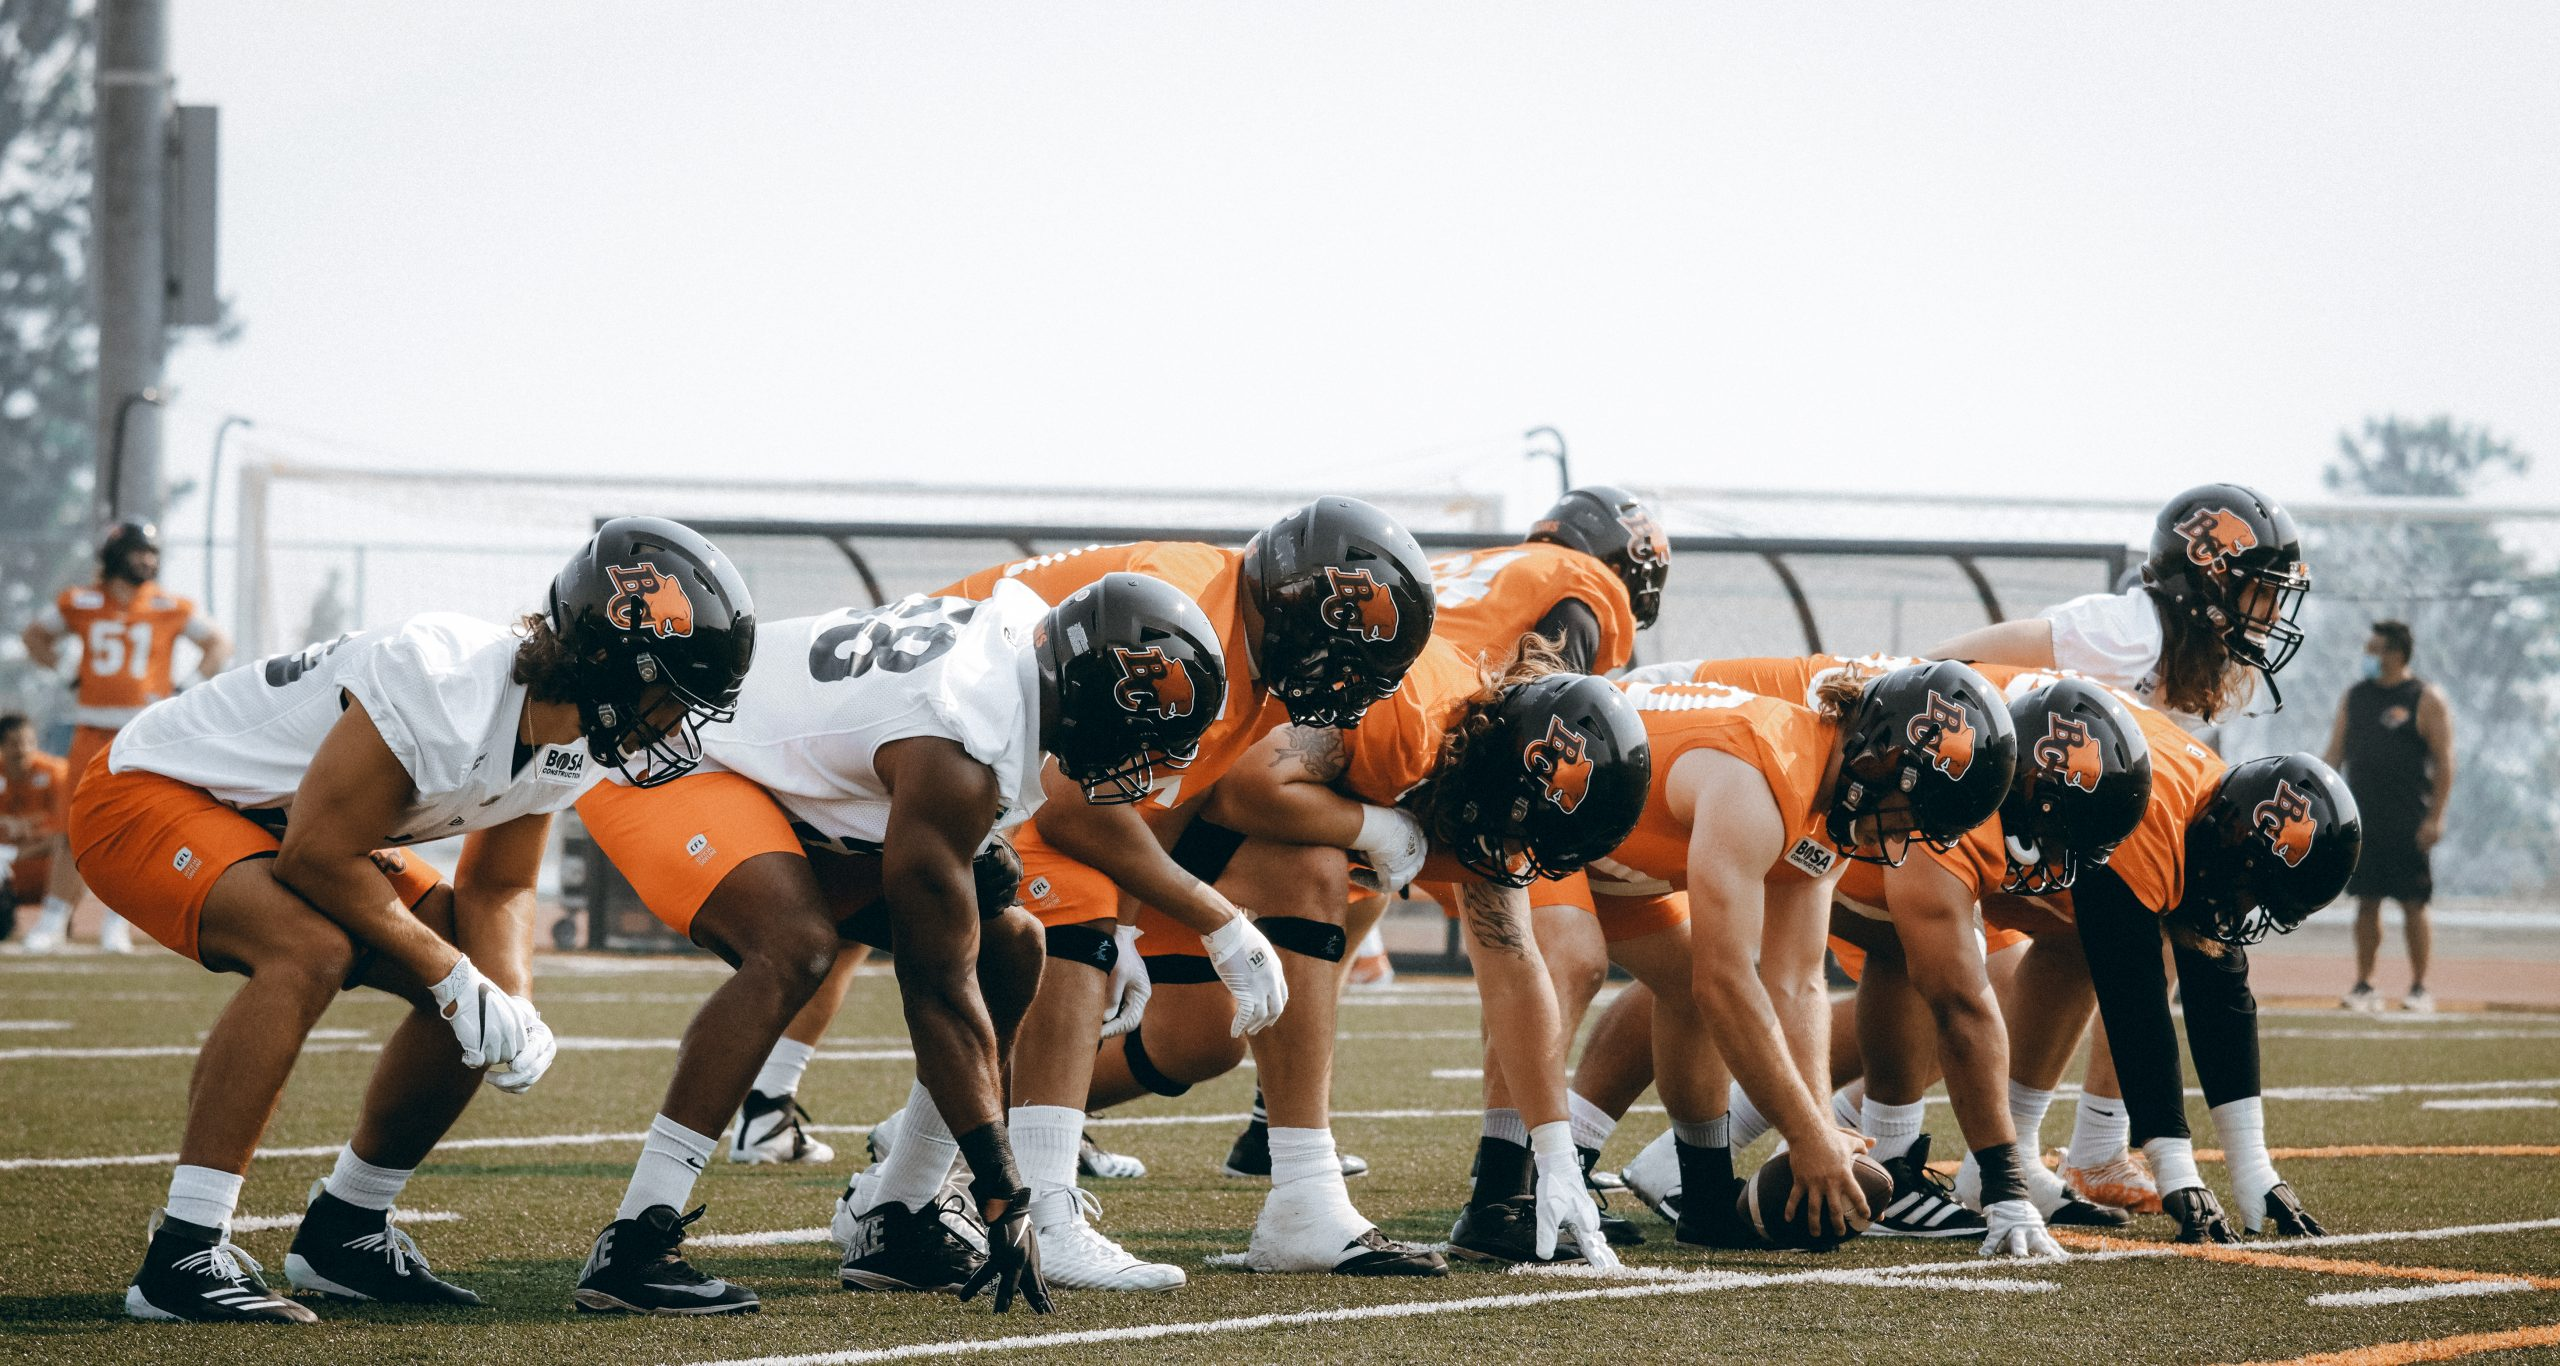 BC Lions Injury Report - BC Lions